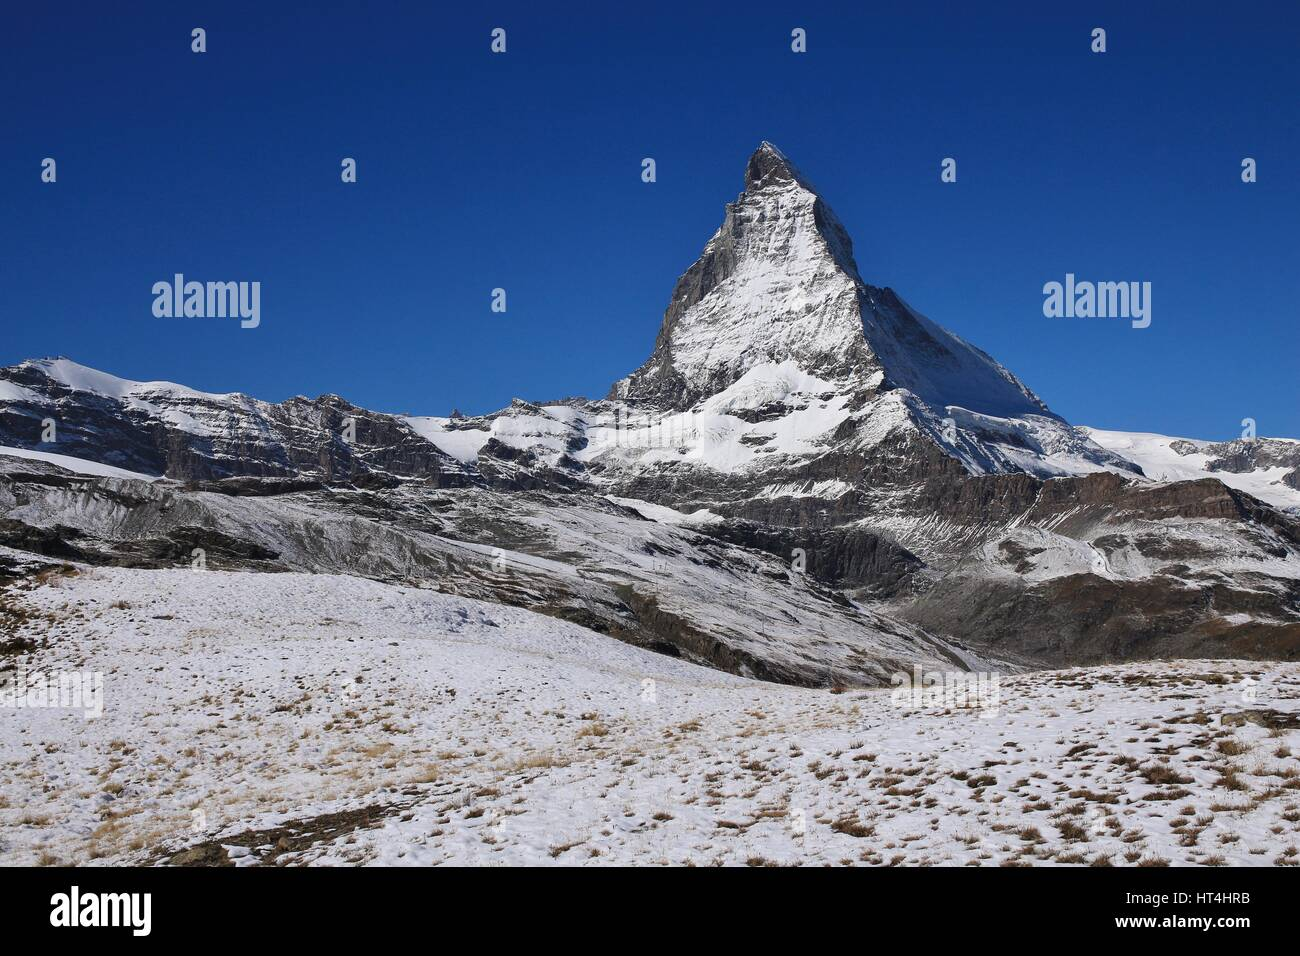 Matterhorn covered by new snow. Autumn scene in Zermatt. - Stock Image